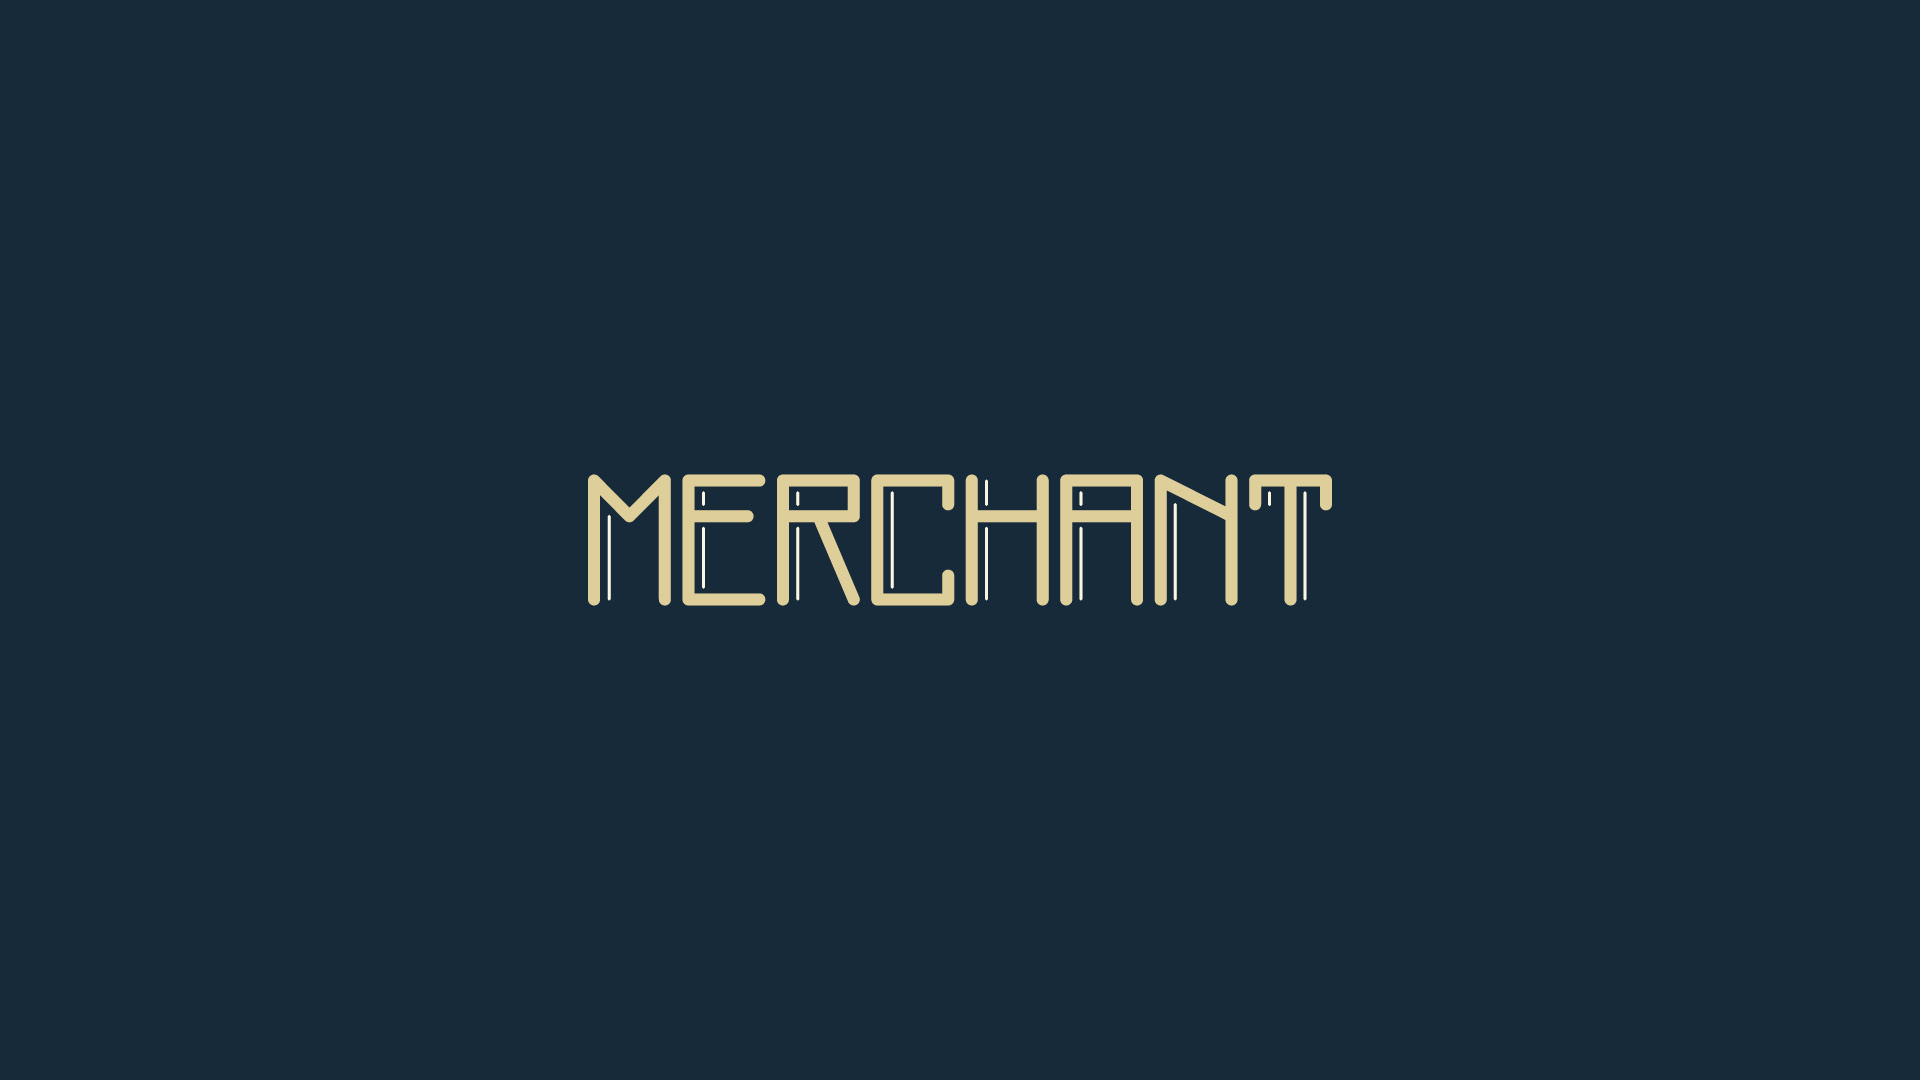 Merchant-Project-Image-2